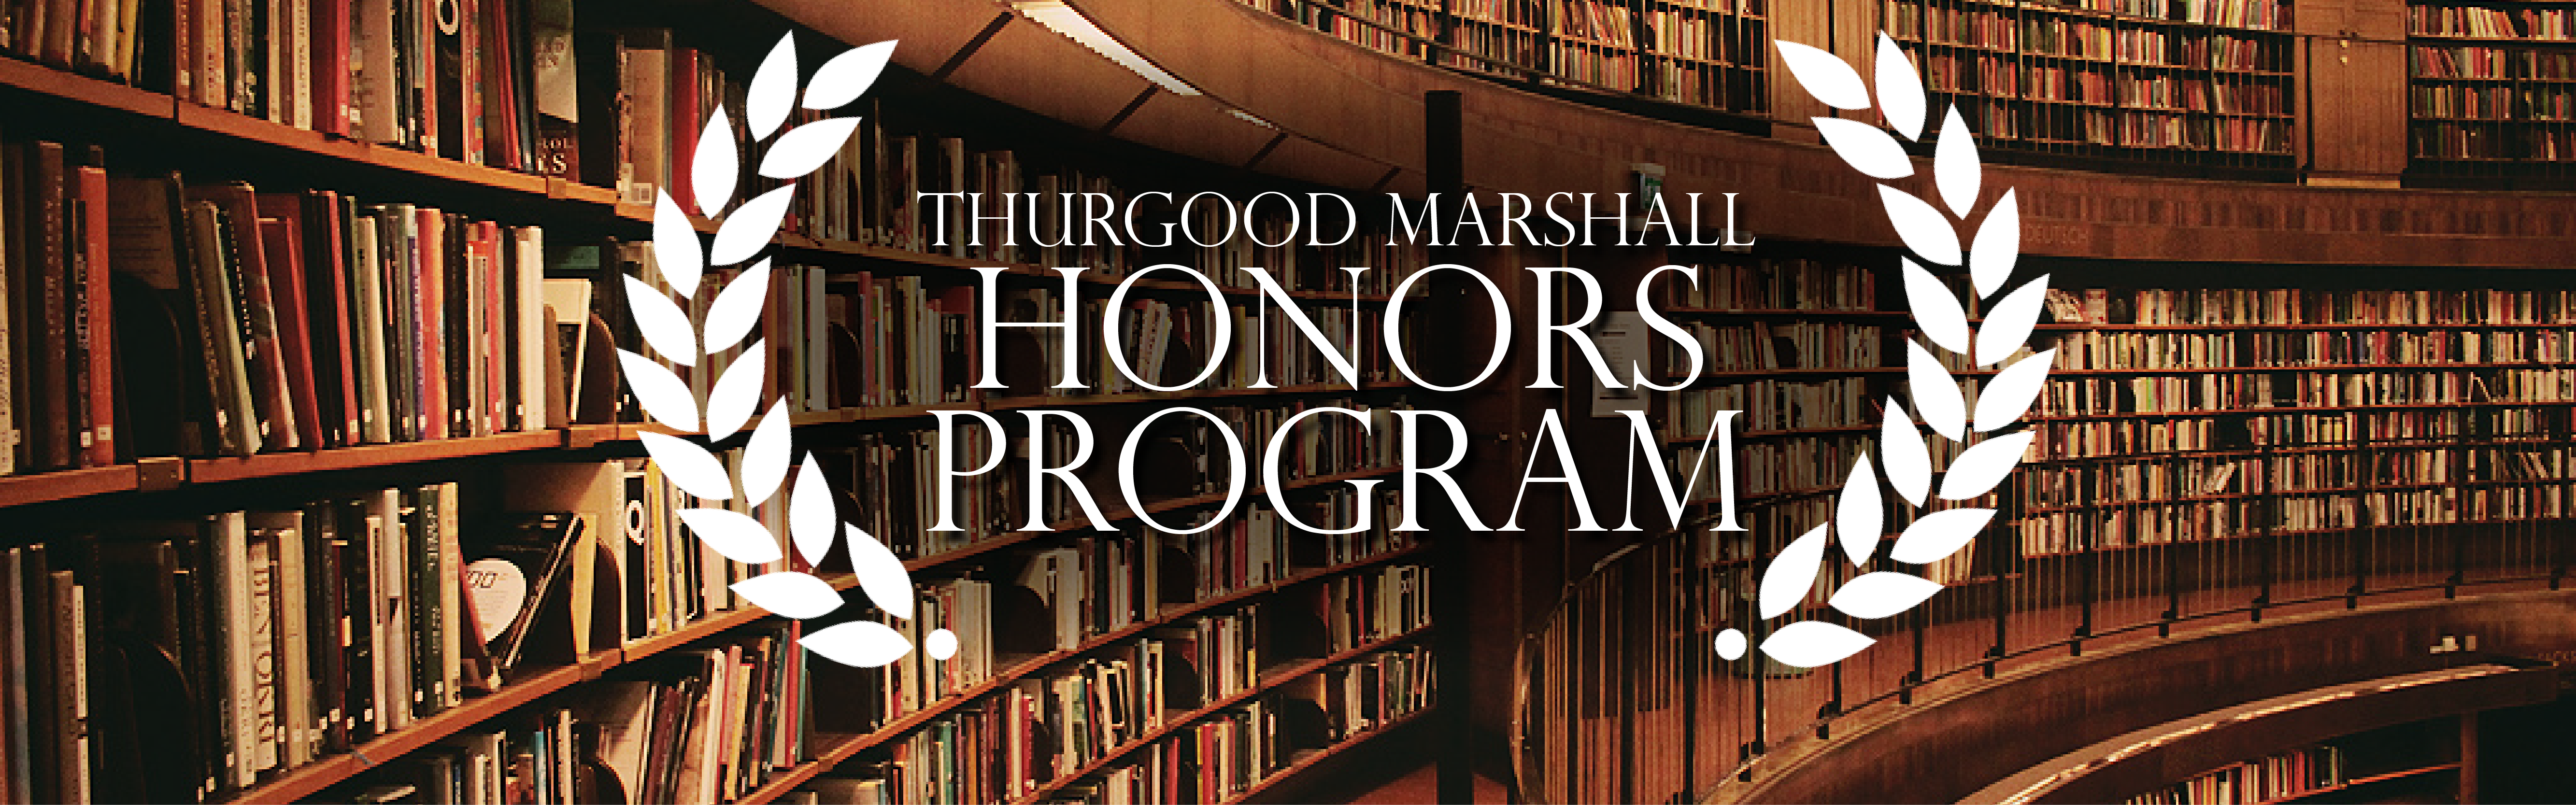 honors-program-banner